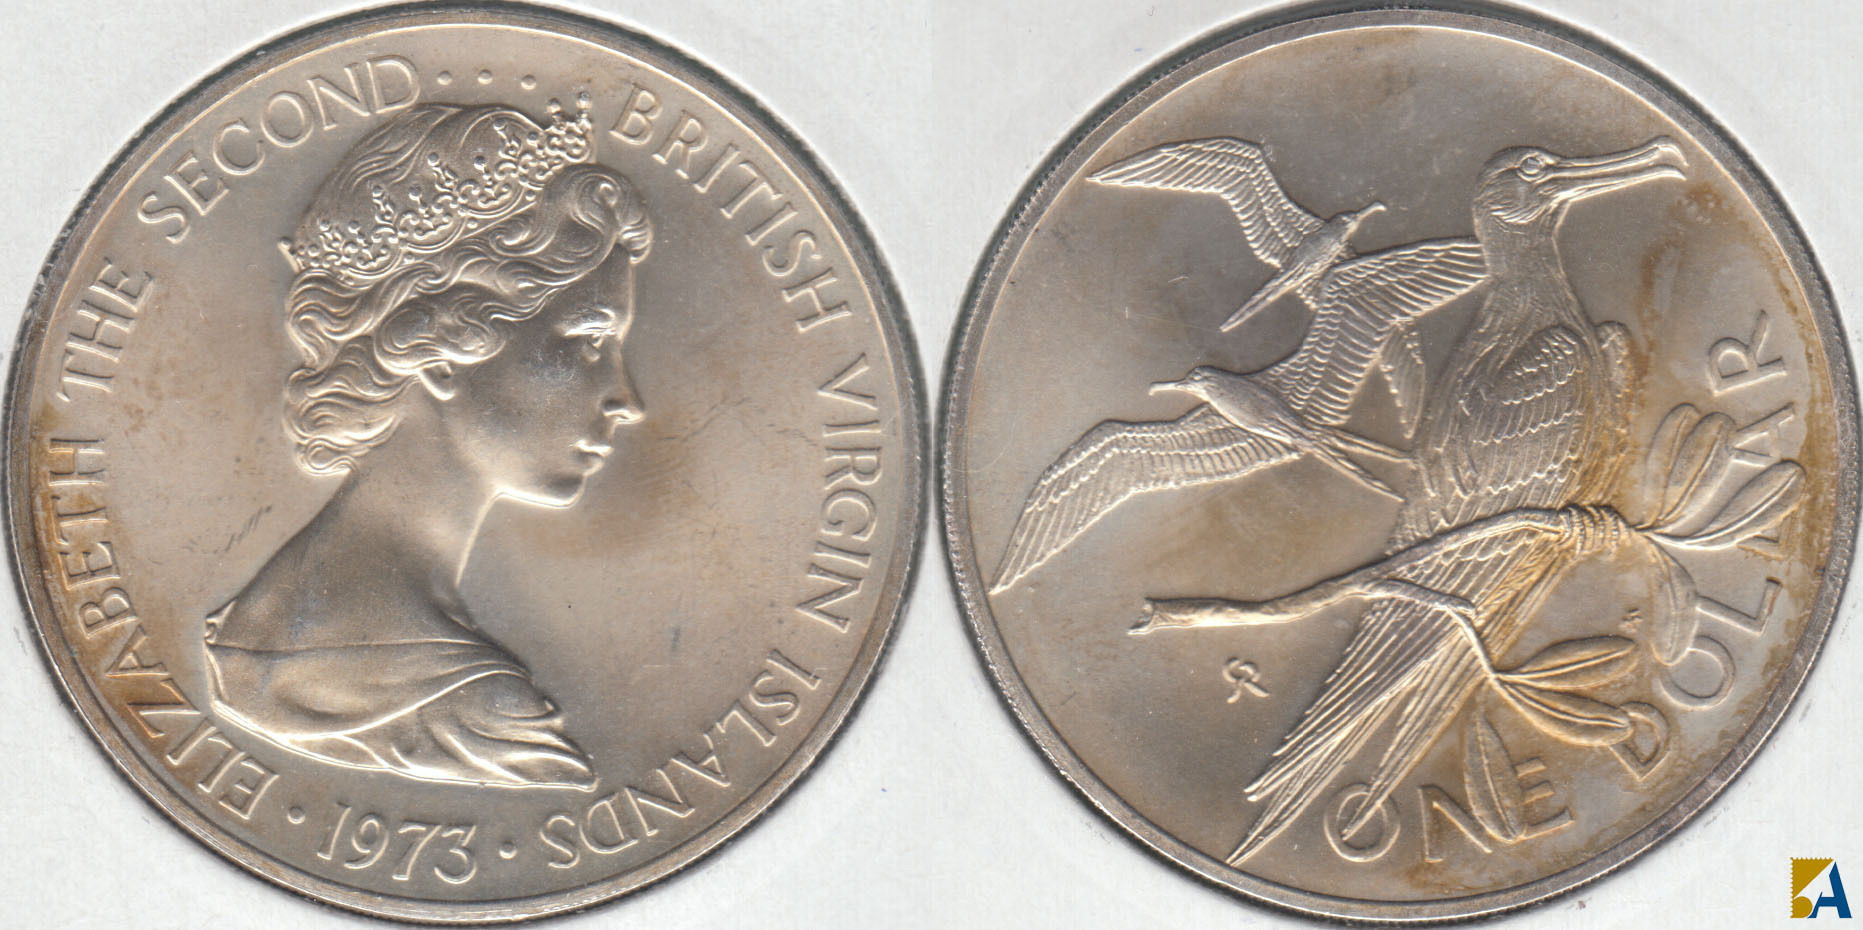 ISLAS VIRGENES - BRITISH VIRGIN ISLANDS. 1 DOLAR (DOLLAR) DE 1973. PLATA 0.9250.